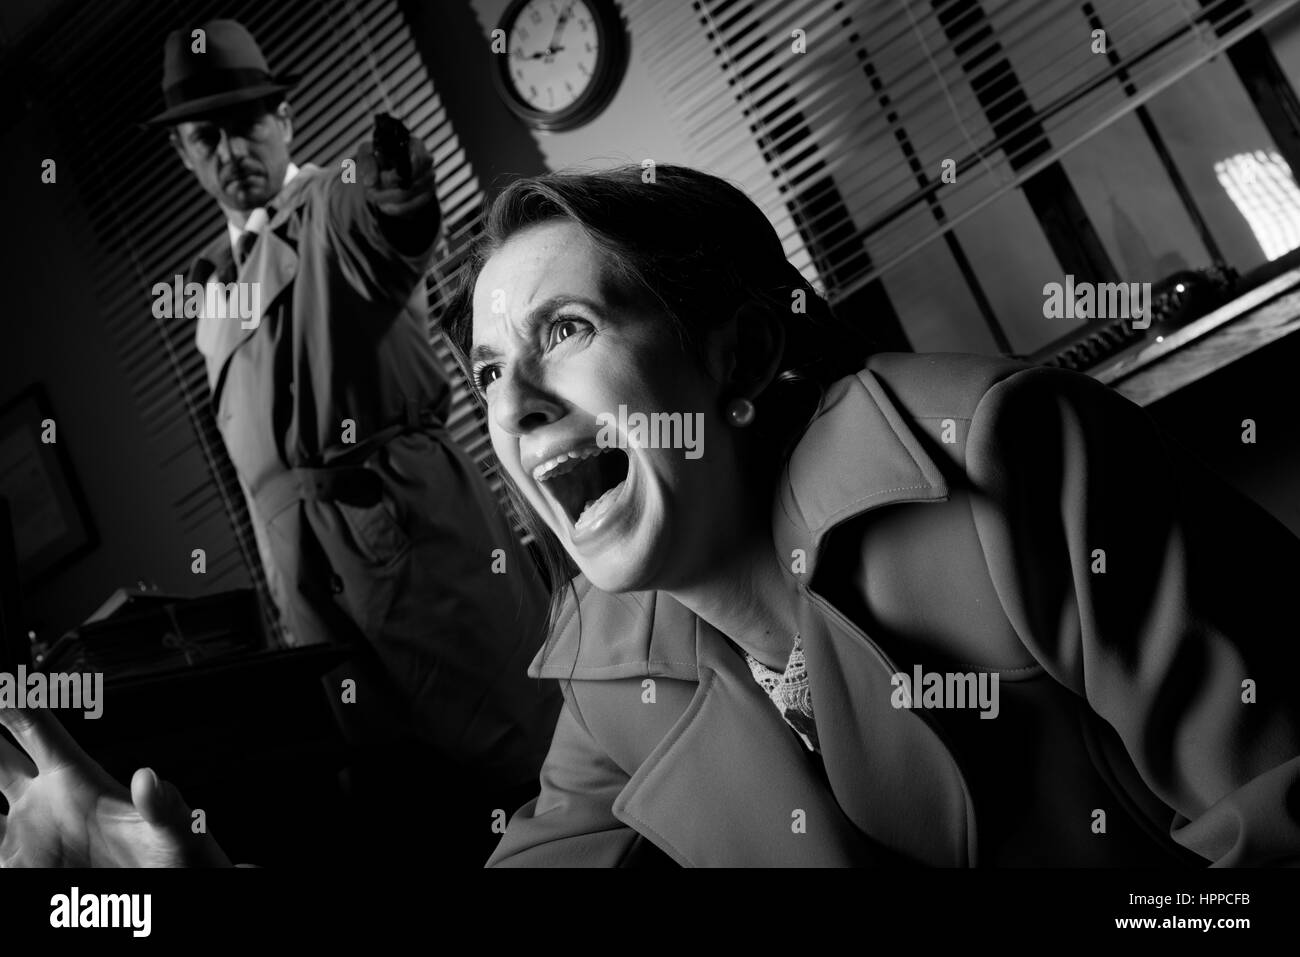 Detective standing in the dark and pointing a gun to a screaming woman. - Stock Image